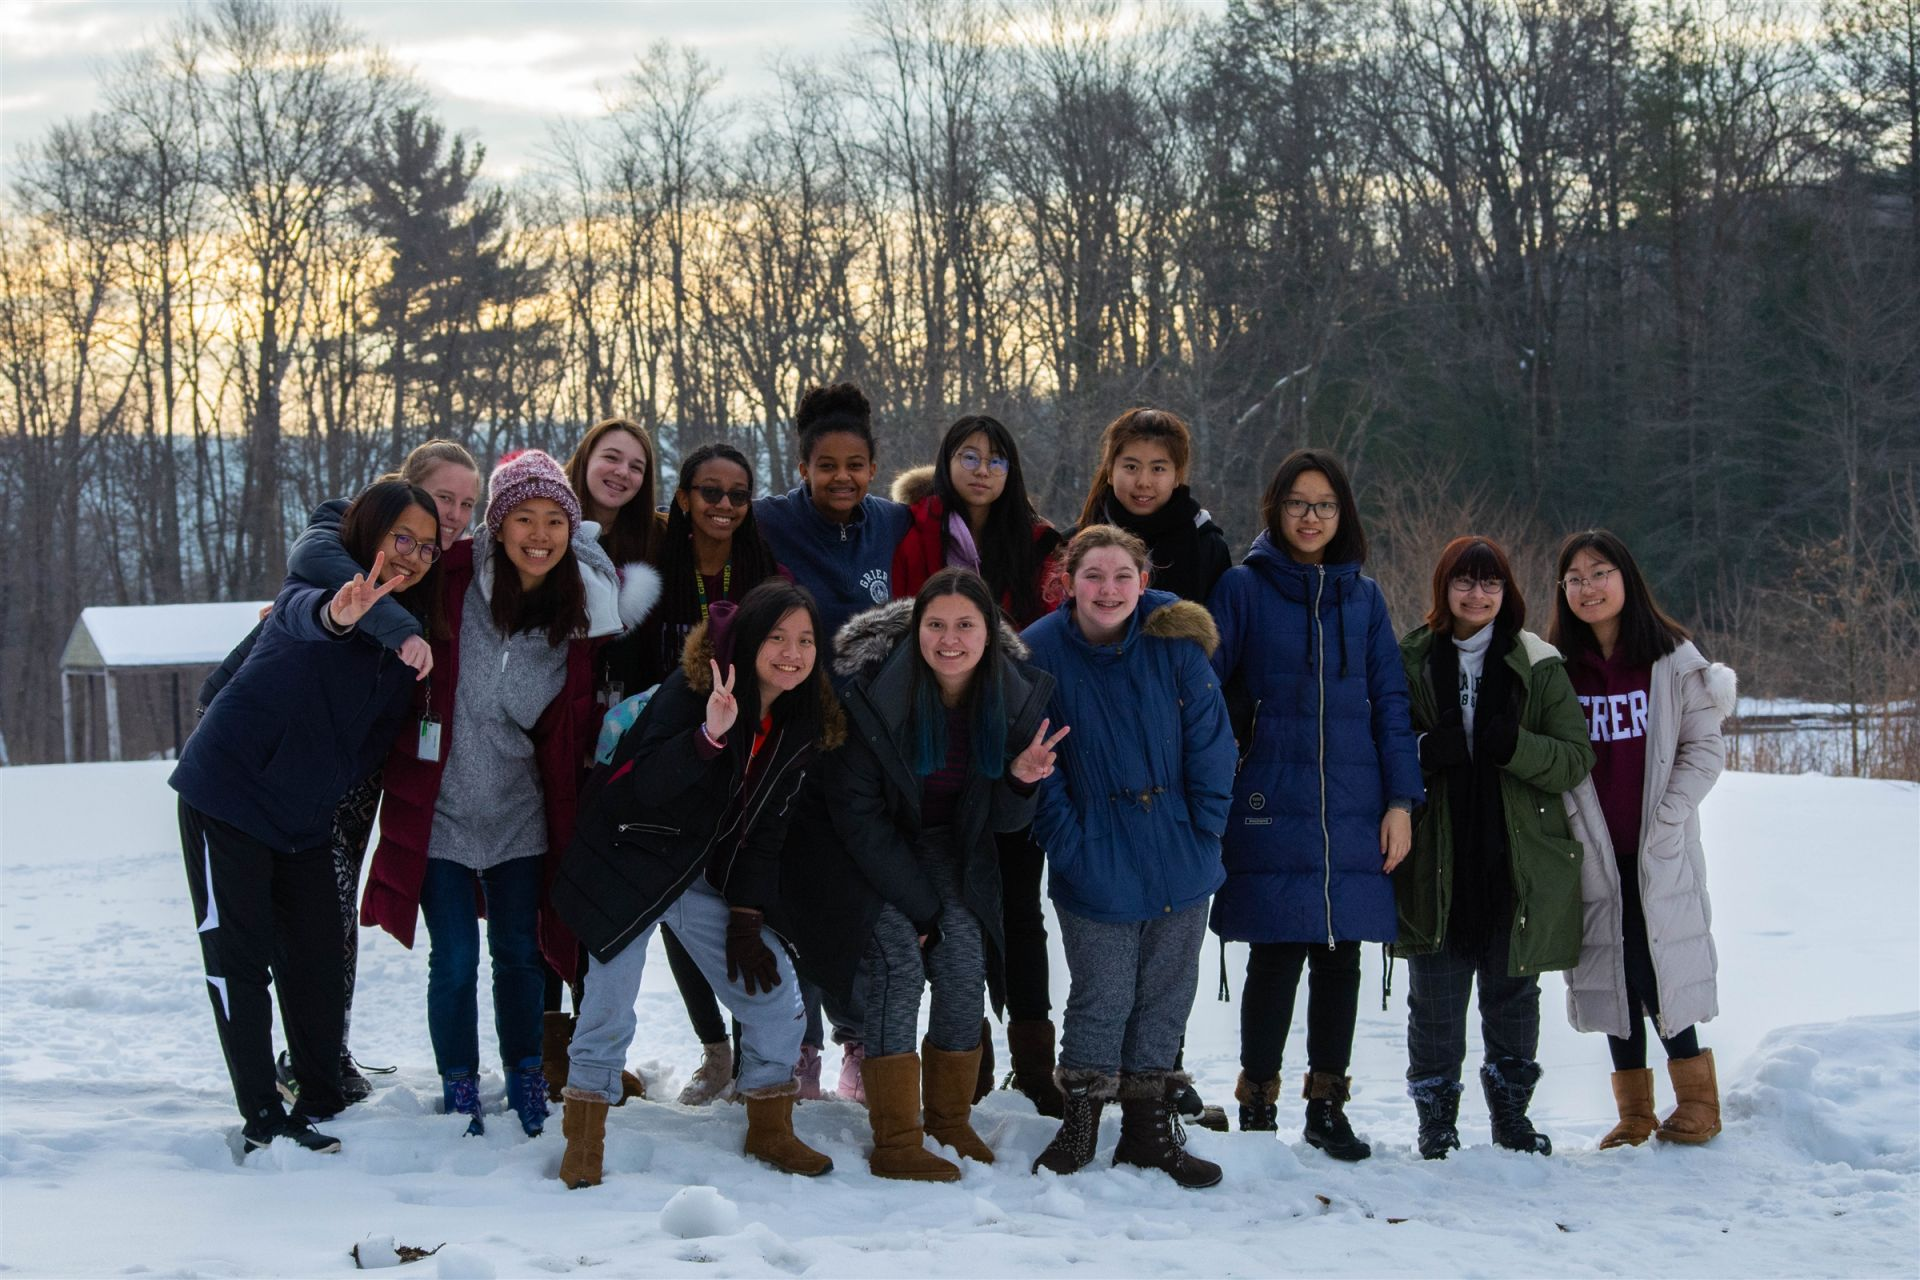 Astronomy Club members enjoy stargazing and winter camping trip at Camp Anderson.